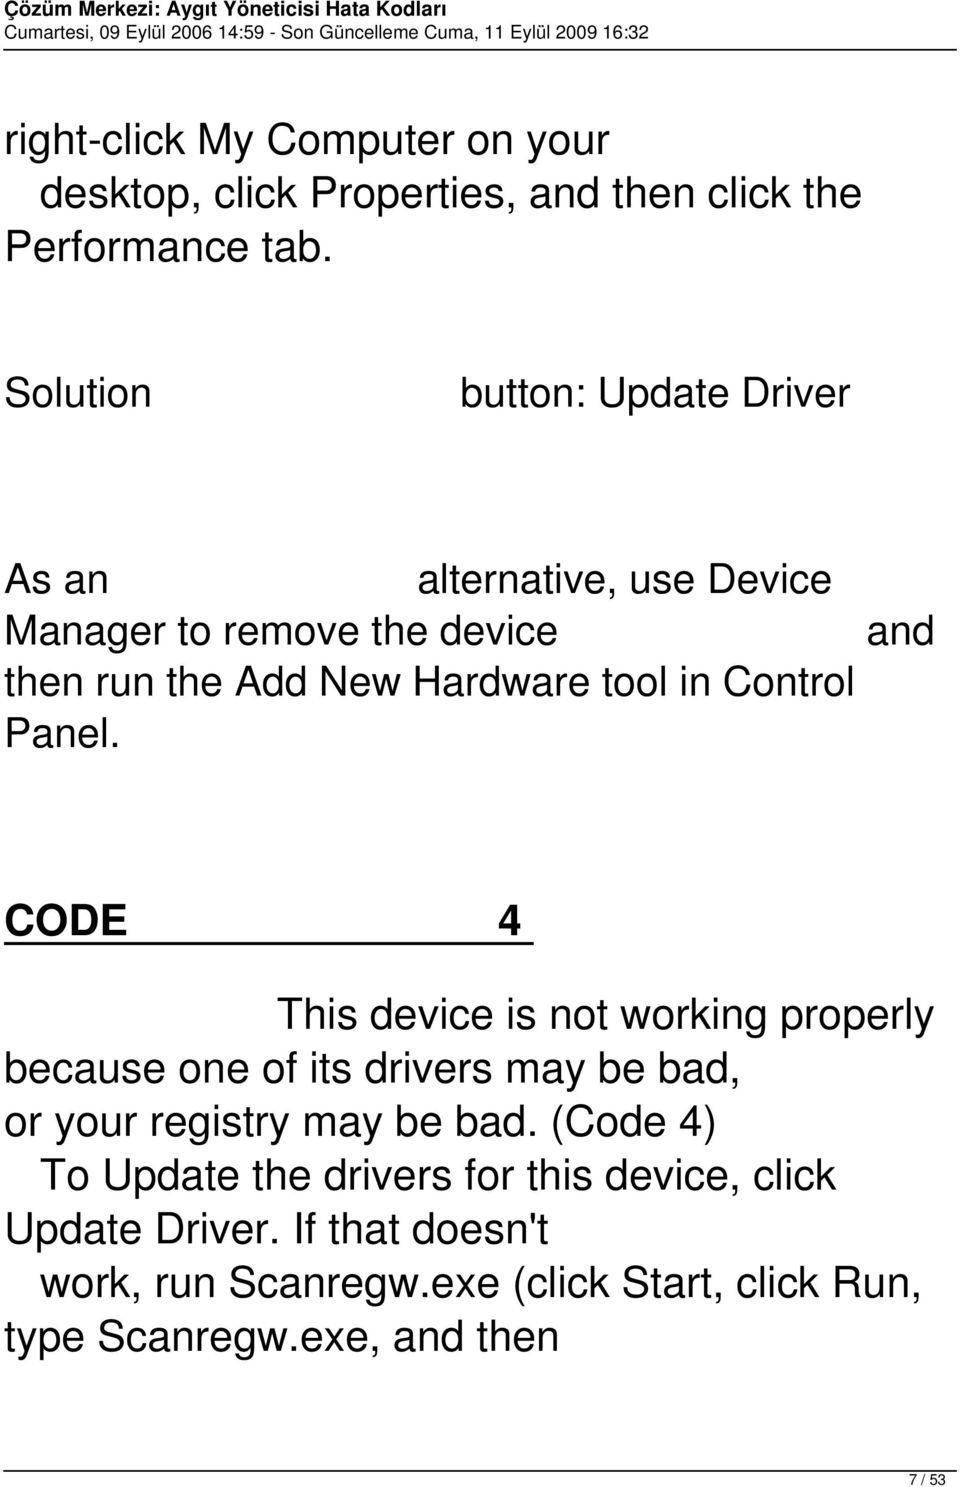 Control Panel. and CODE 4 This device is not working properly because one of its drivers may be bad, or your registry may be bad.